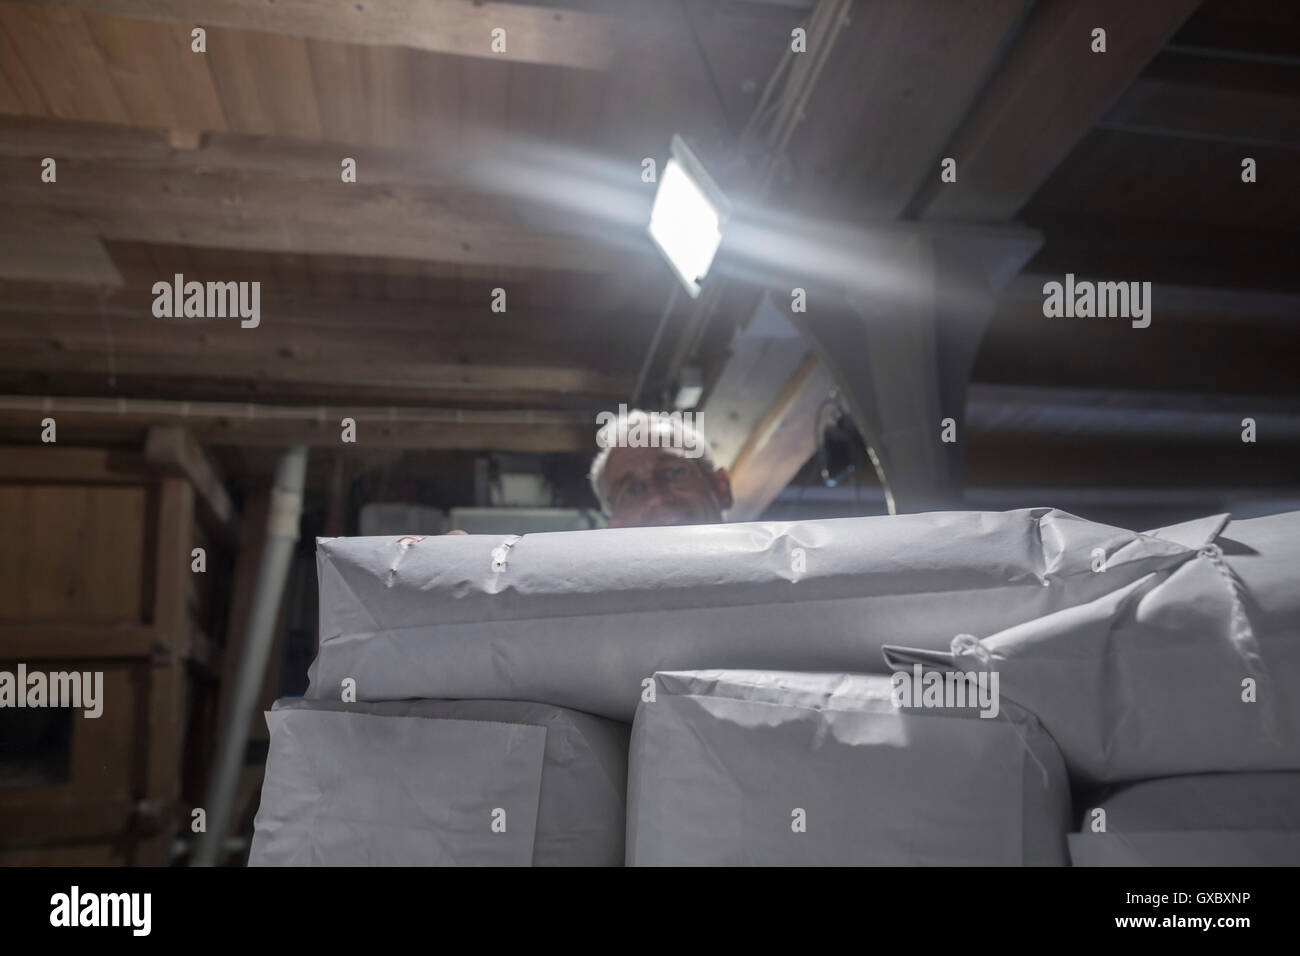 Male miller stacking sacks of milled flour in wheat mill - Stock Image